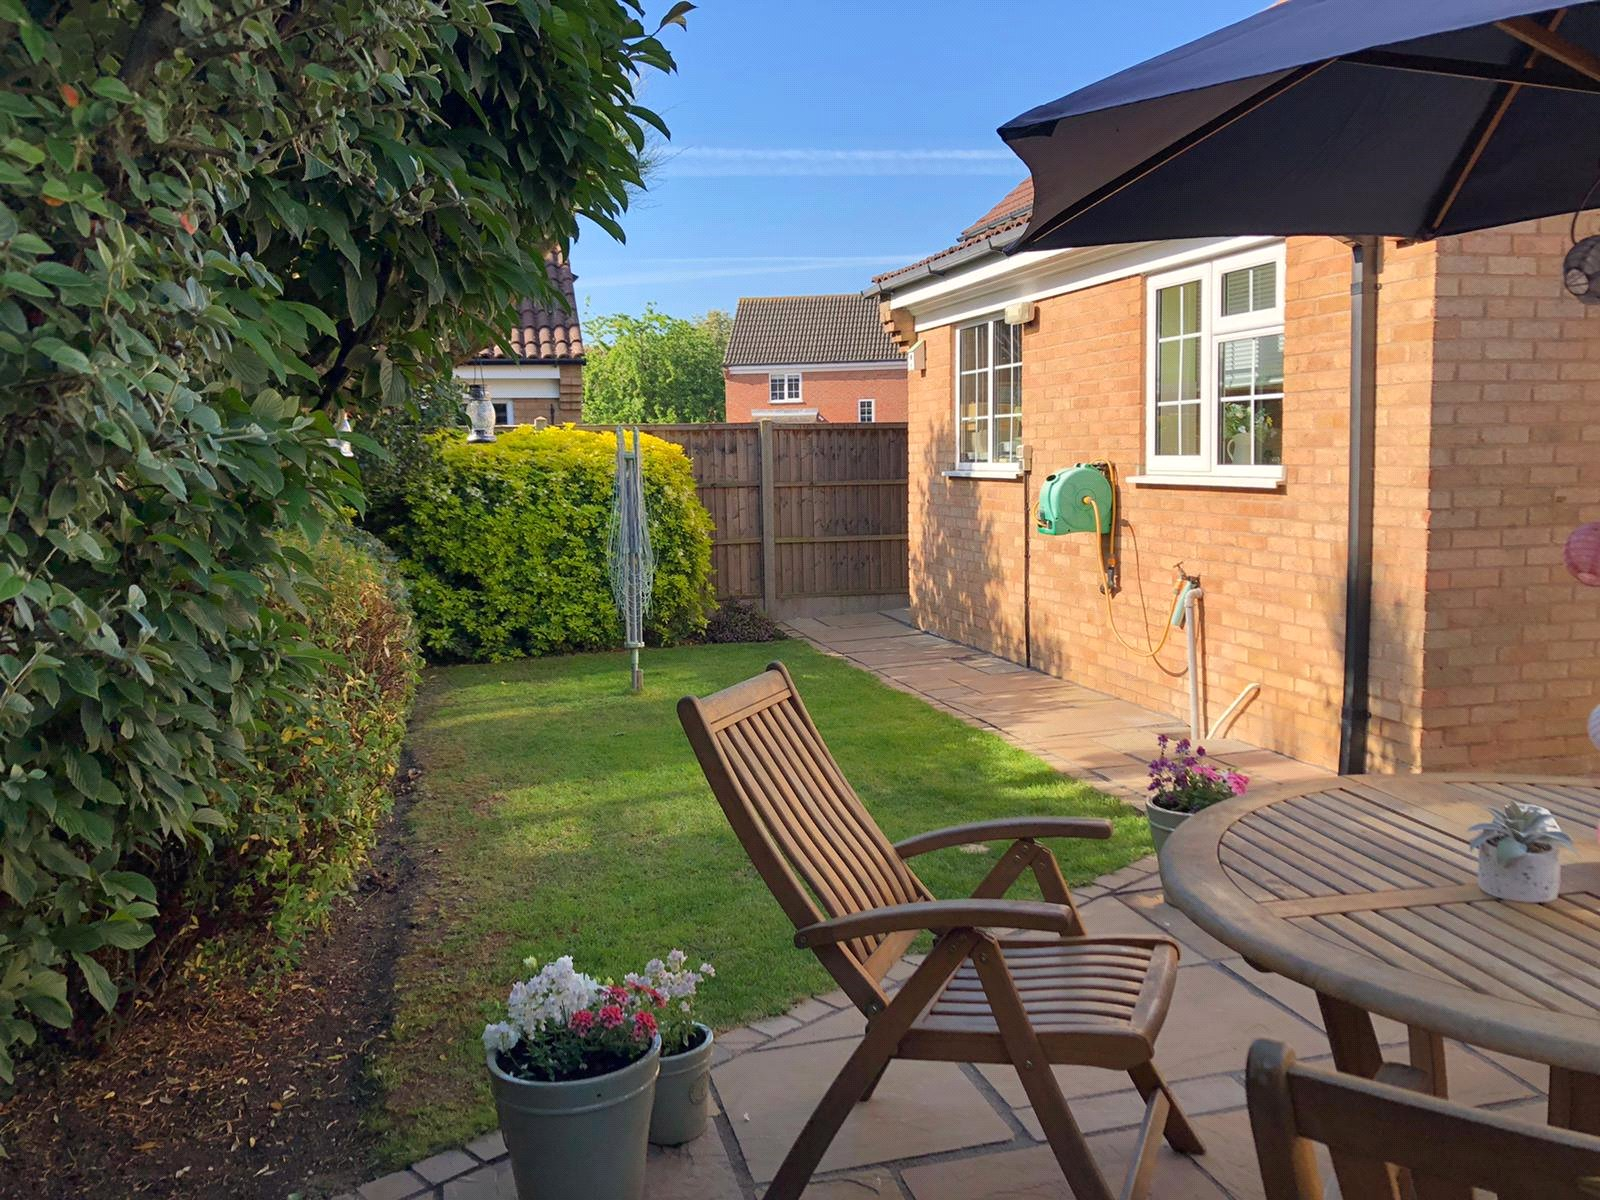 3 bed house for sale in Axis Way, Eaton Socon  - Property Image 7